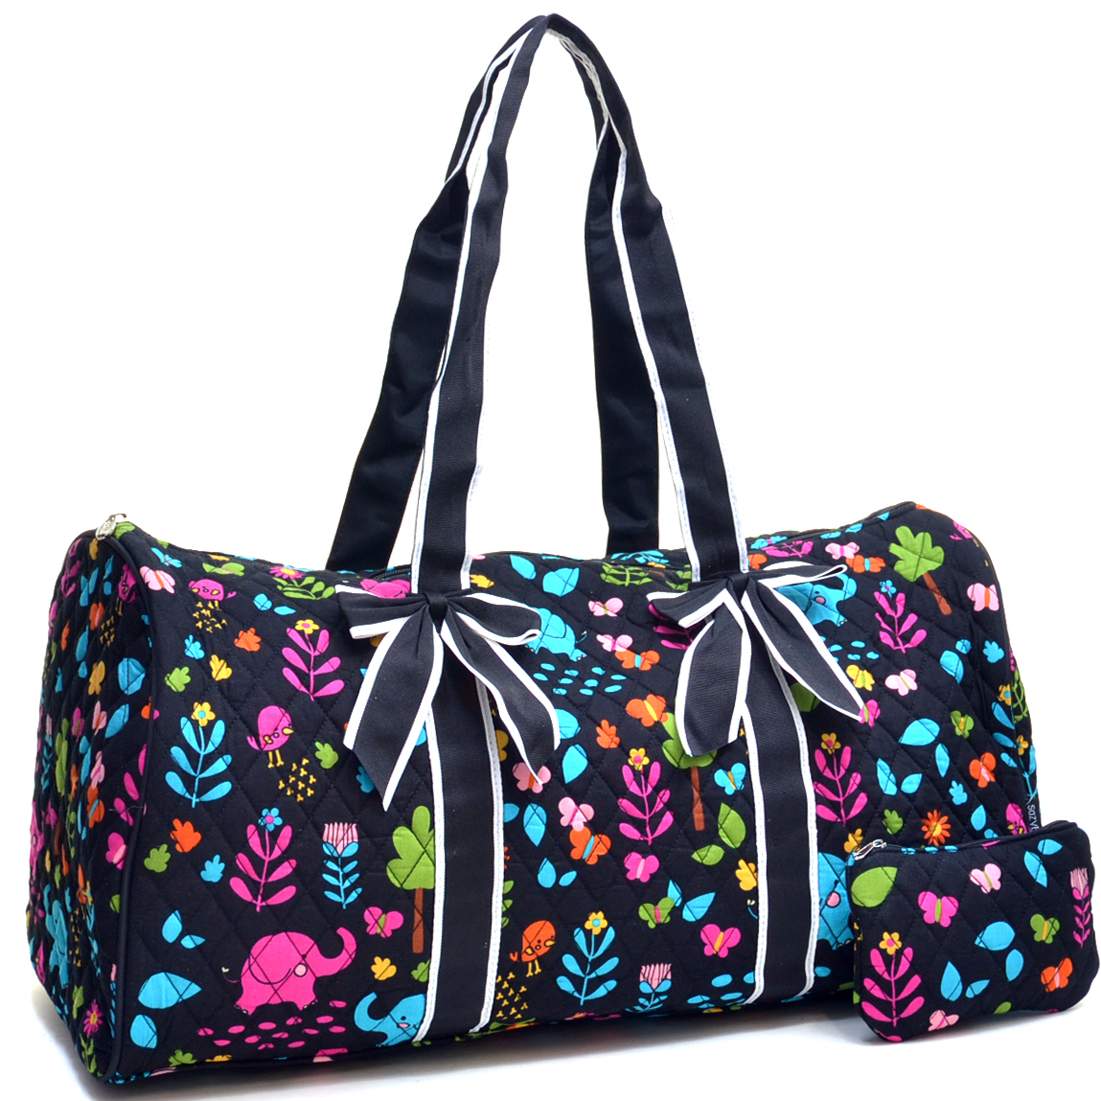 Elephant & Floral Print Quilted Cotton Duffel w/Removable Bow